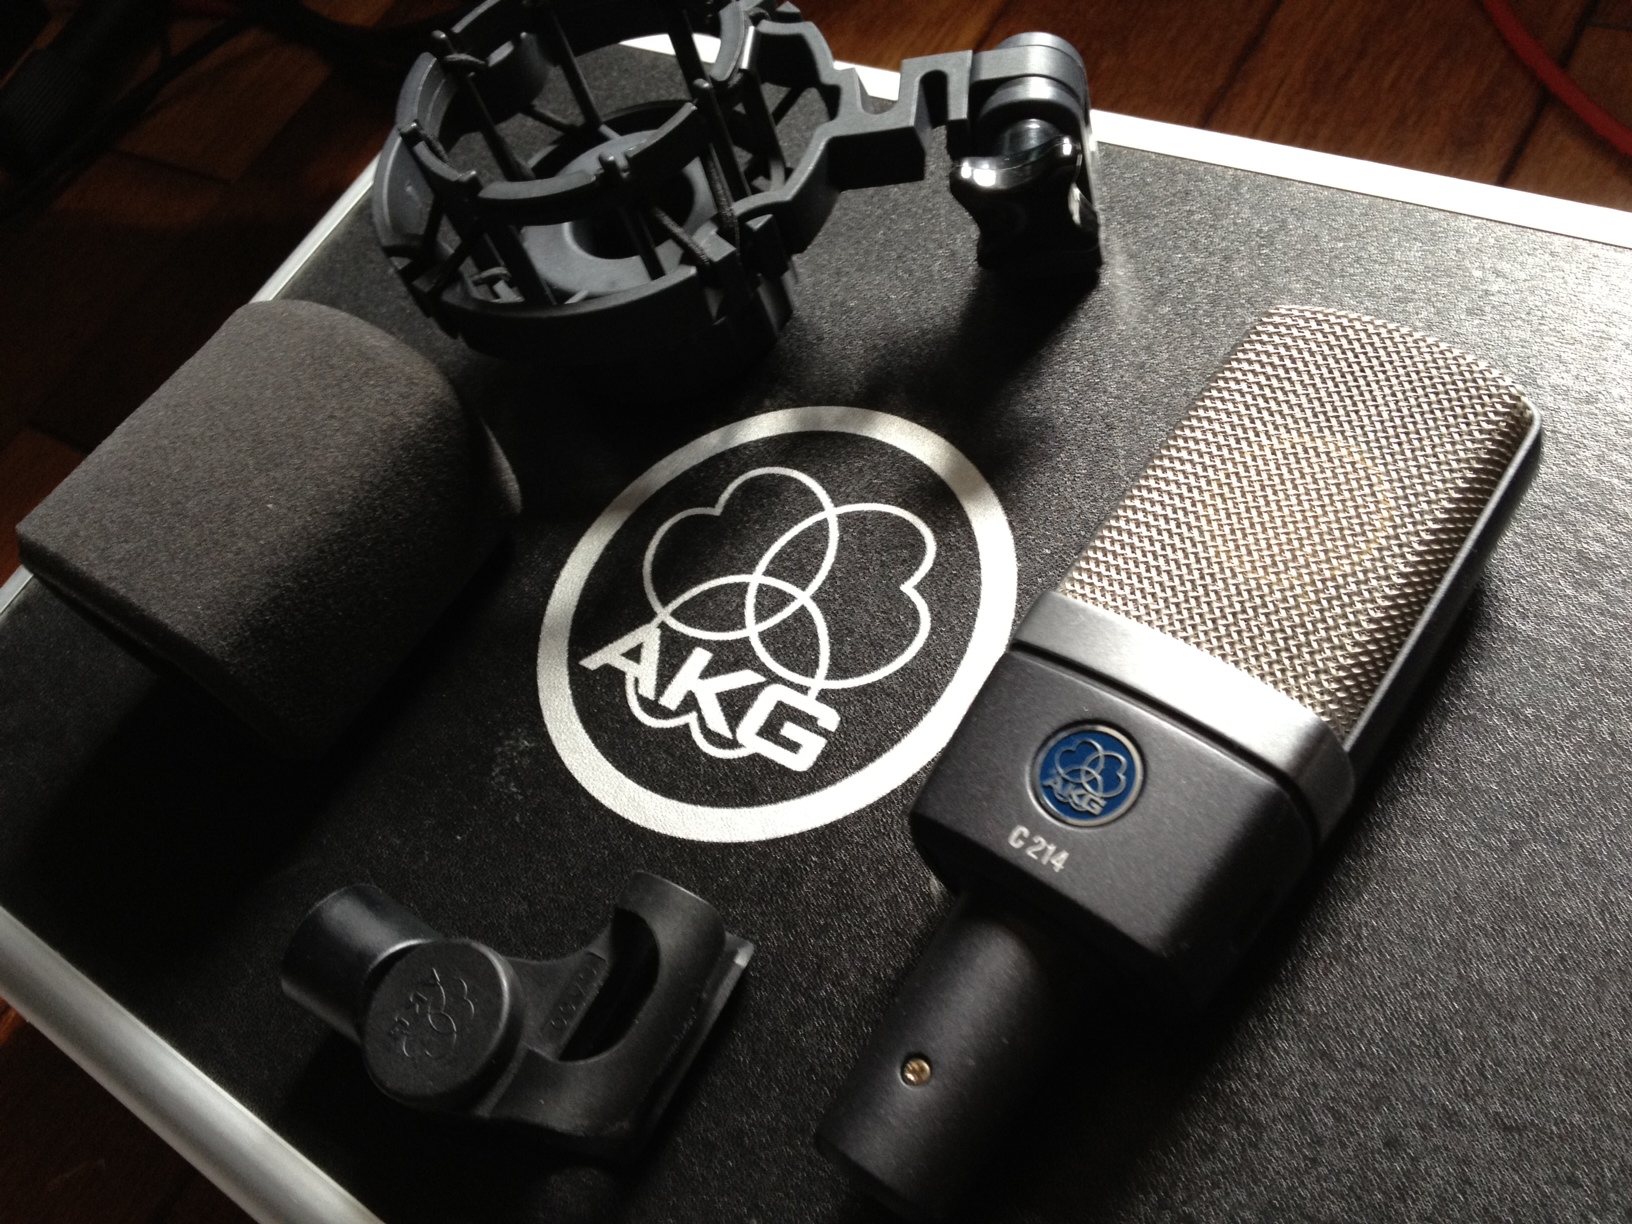 Best condenser microphones for a home recording studio in 2016